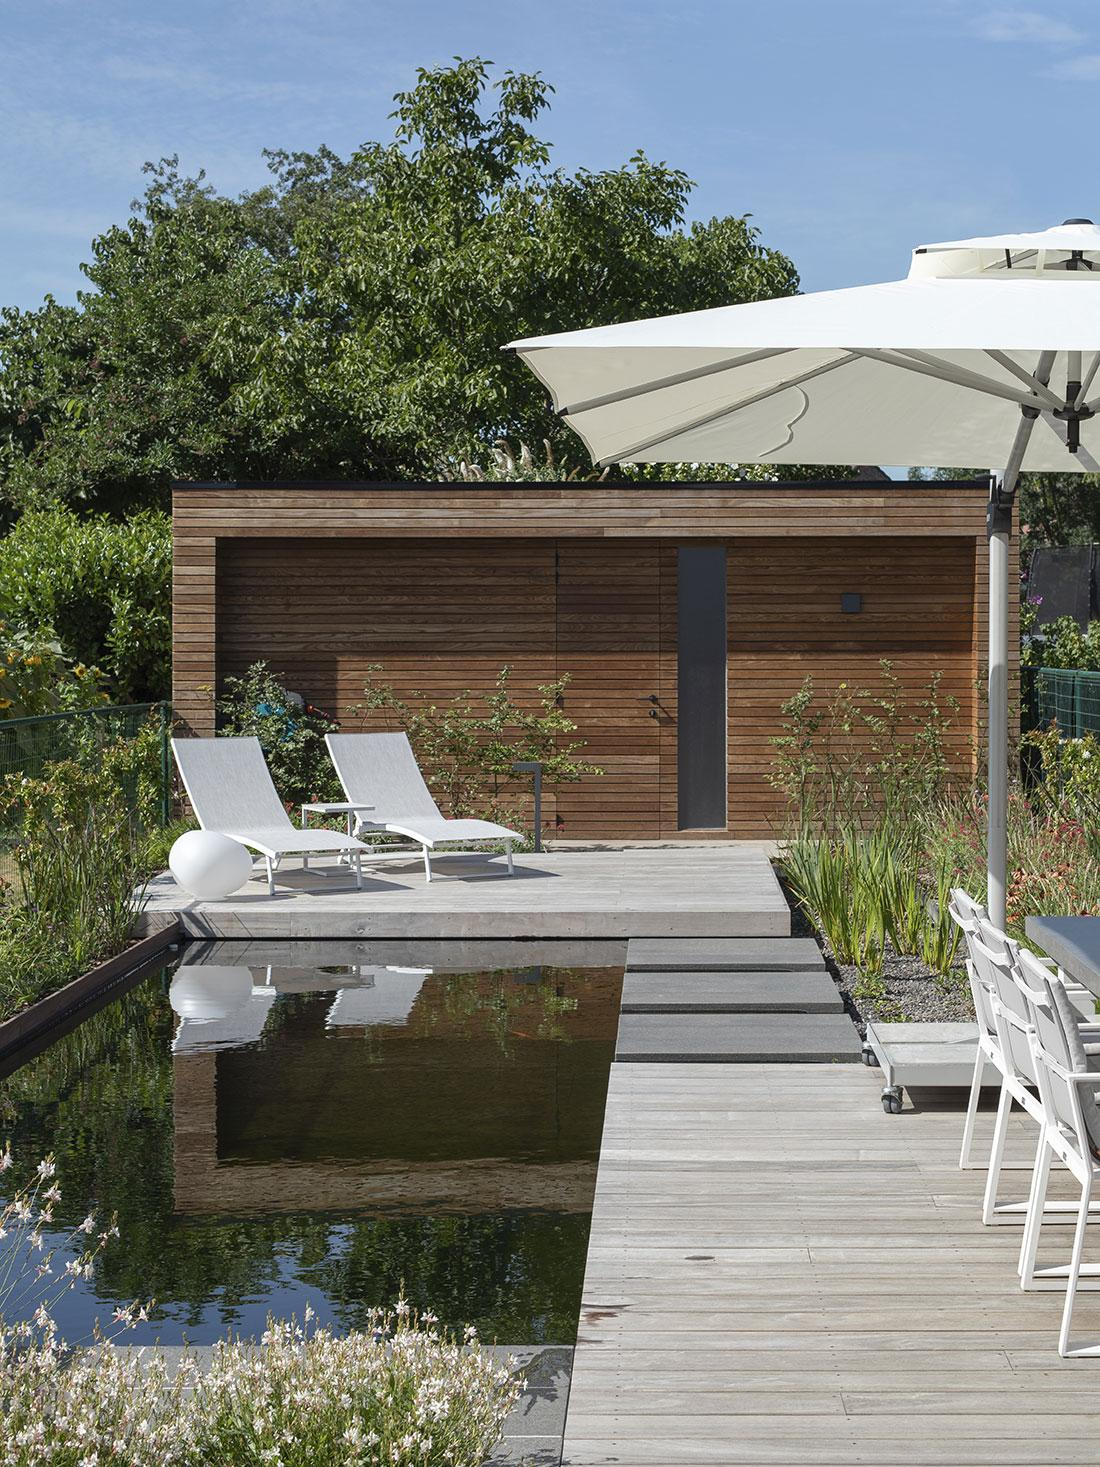 GREENARCHITECTS-TUINARCHITECT-STEFAAN-WILLEMS-6Z0A2058.jpg